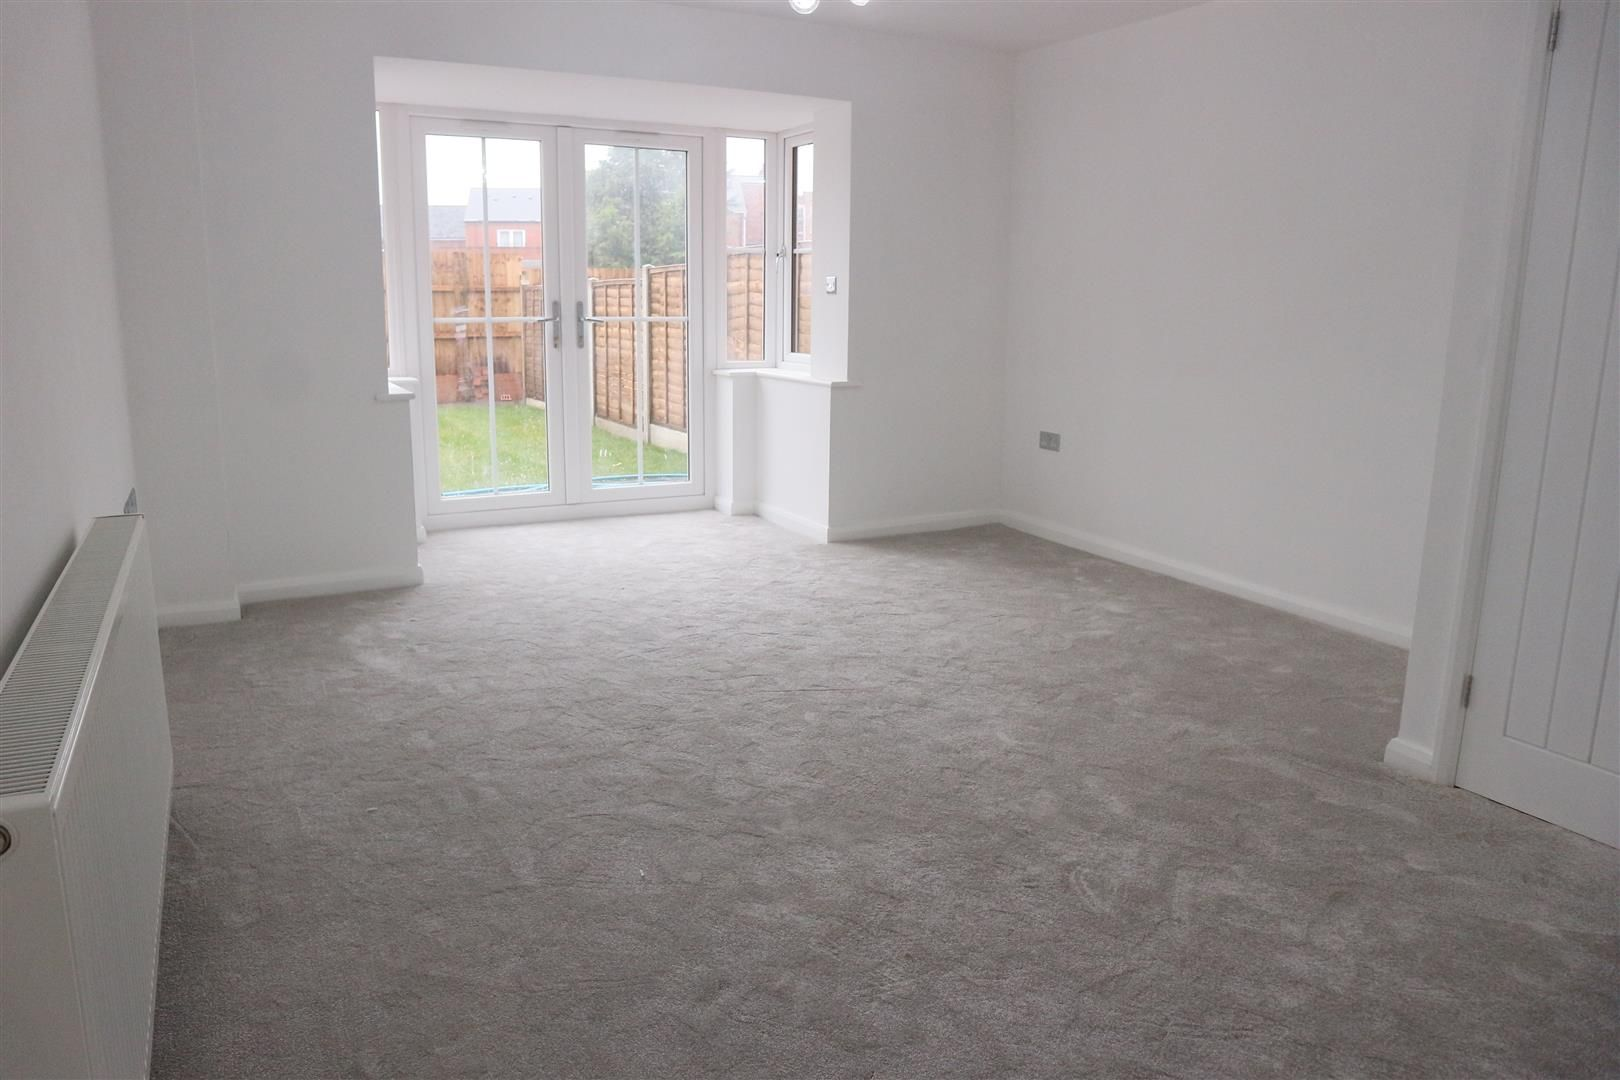 3 bed semi-detached for sale in Netherton  - Property Image 4